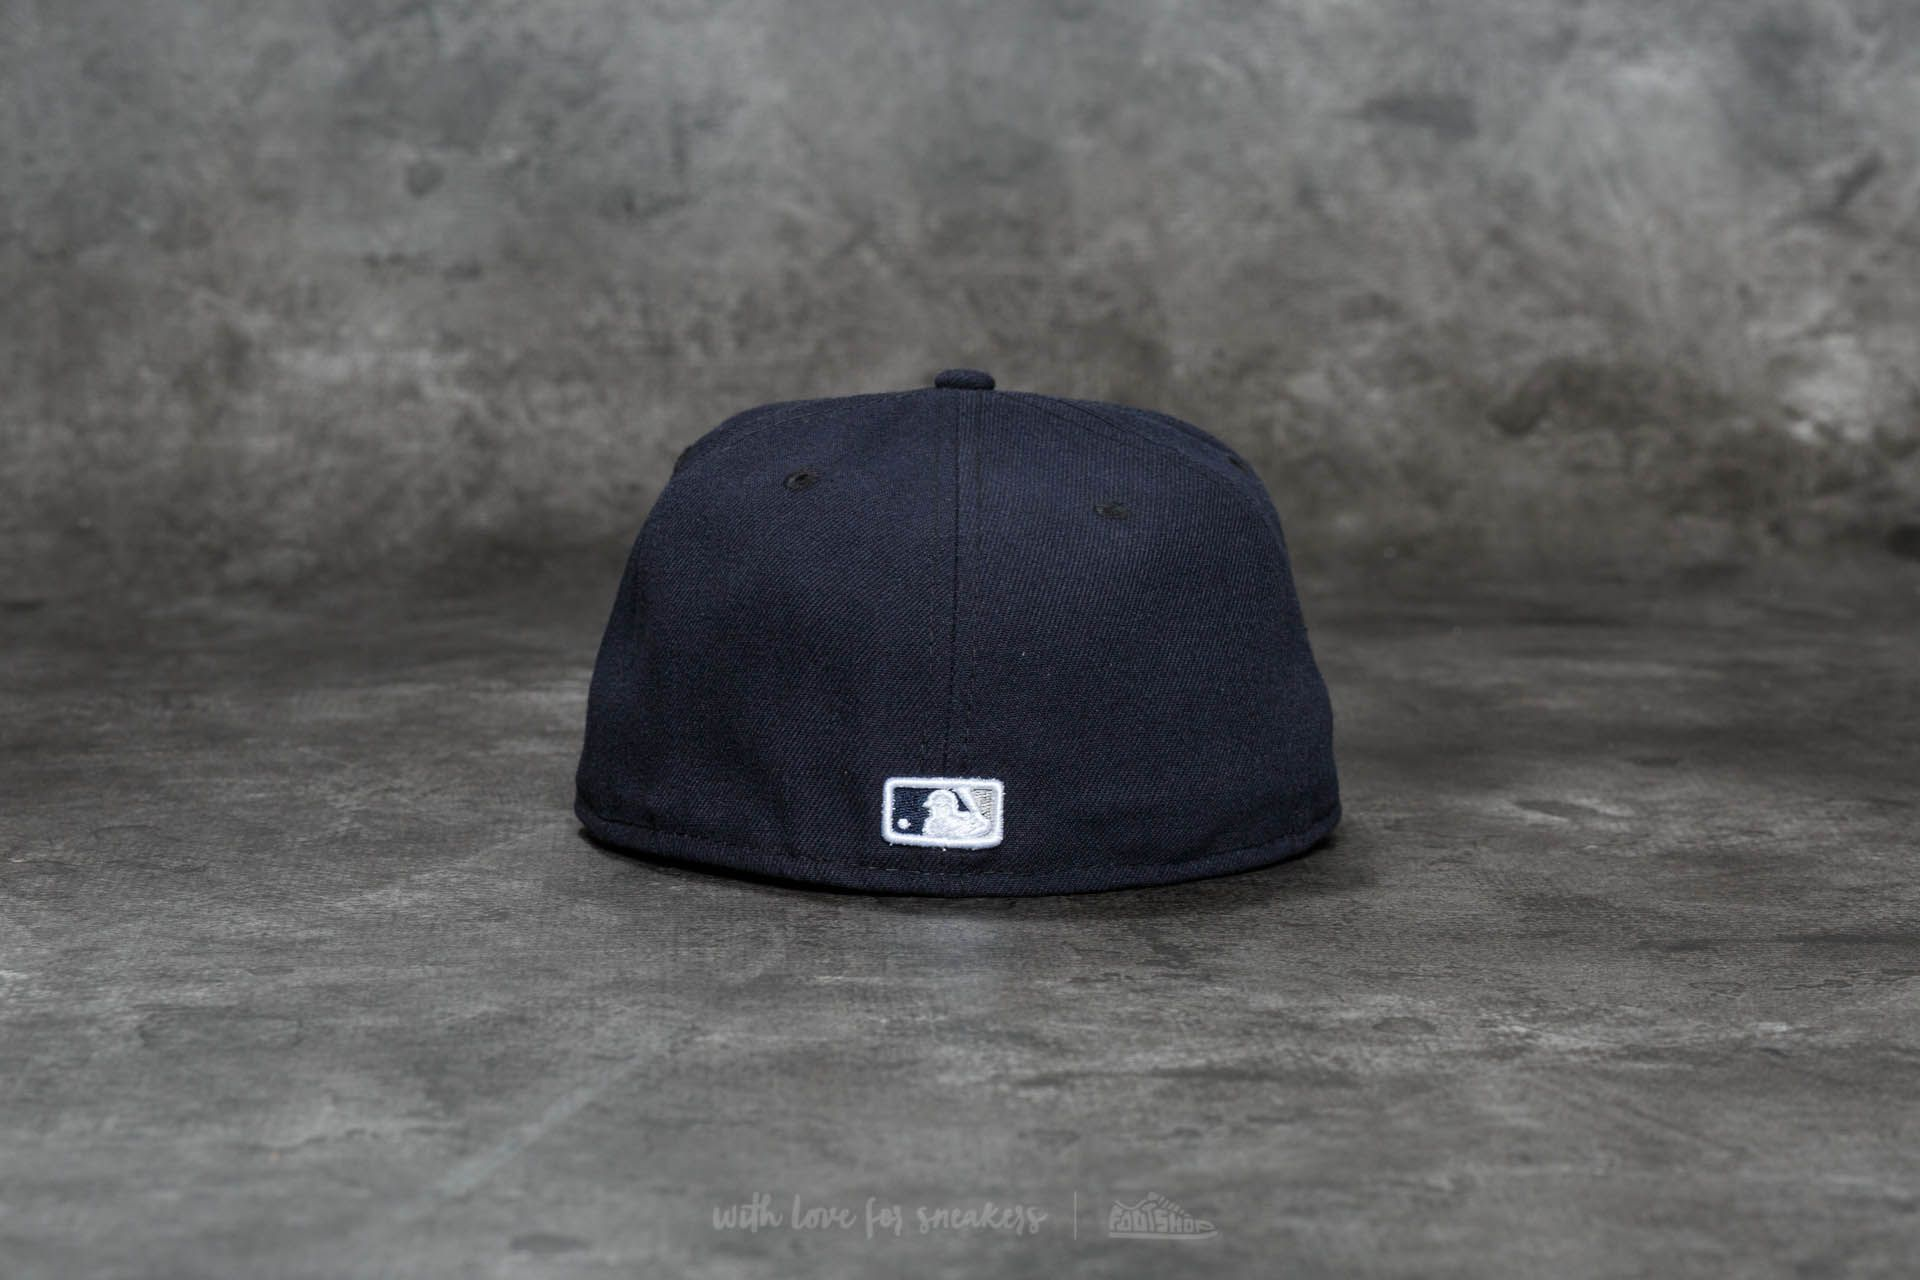 finest selection ffc9d b3bfb ... new zealand new era 59fifty acperf new york yankees cap navy at a great  price 36